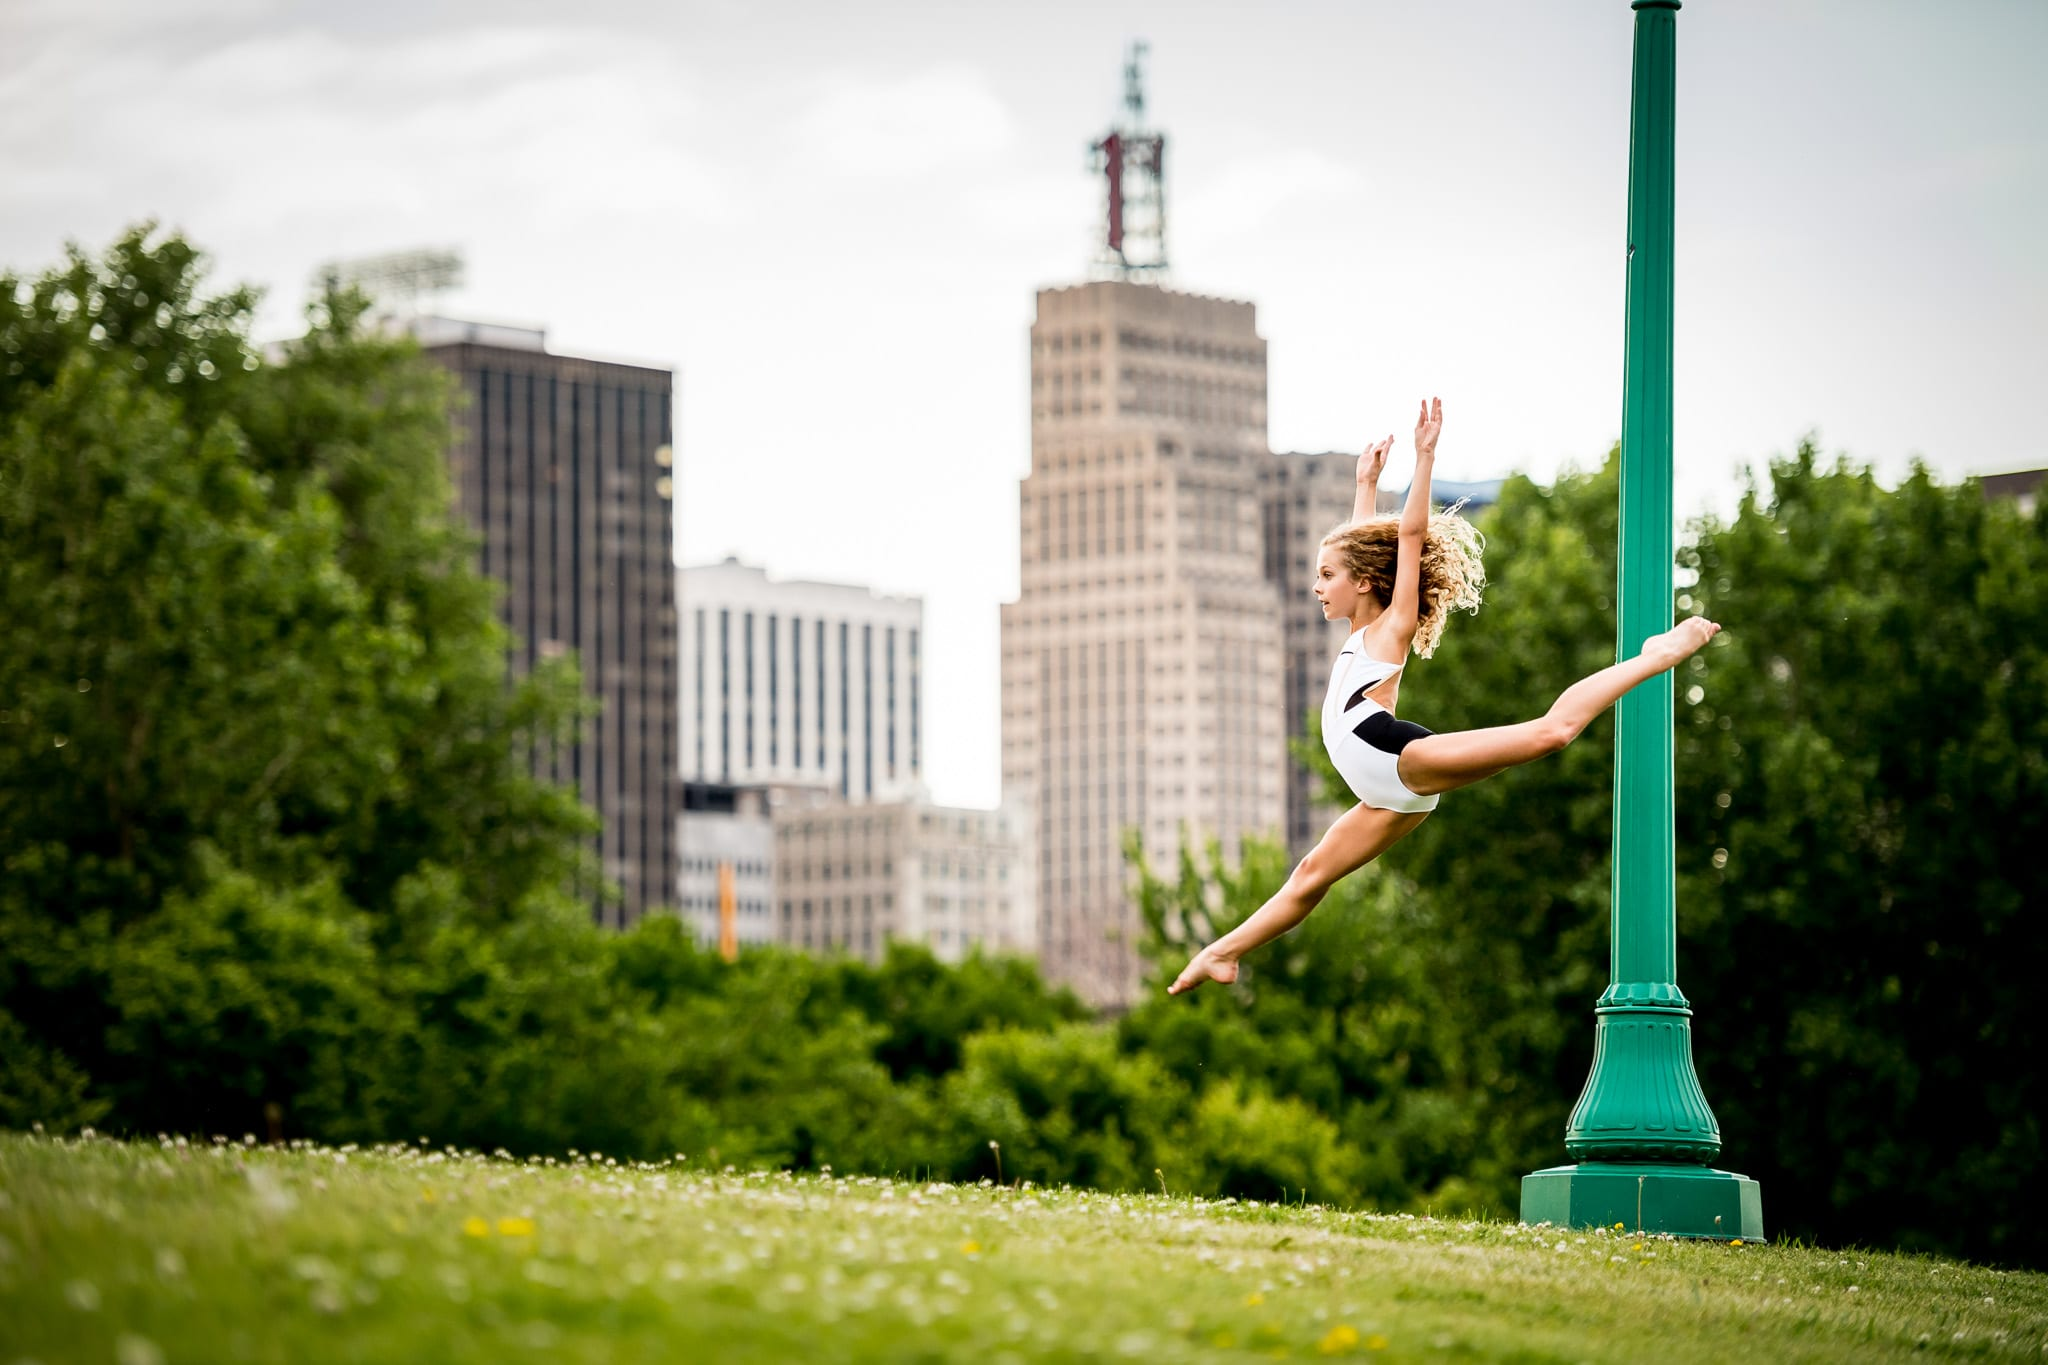 A young contemporary dancer leaping near a bright green light post, with the downtown Saint Paul, MN skyline in the background.